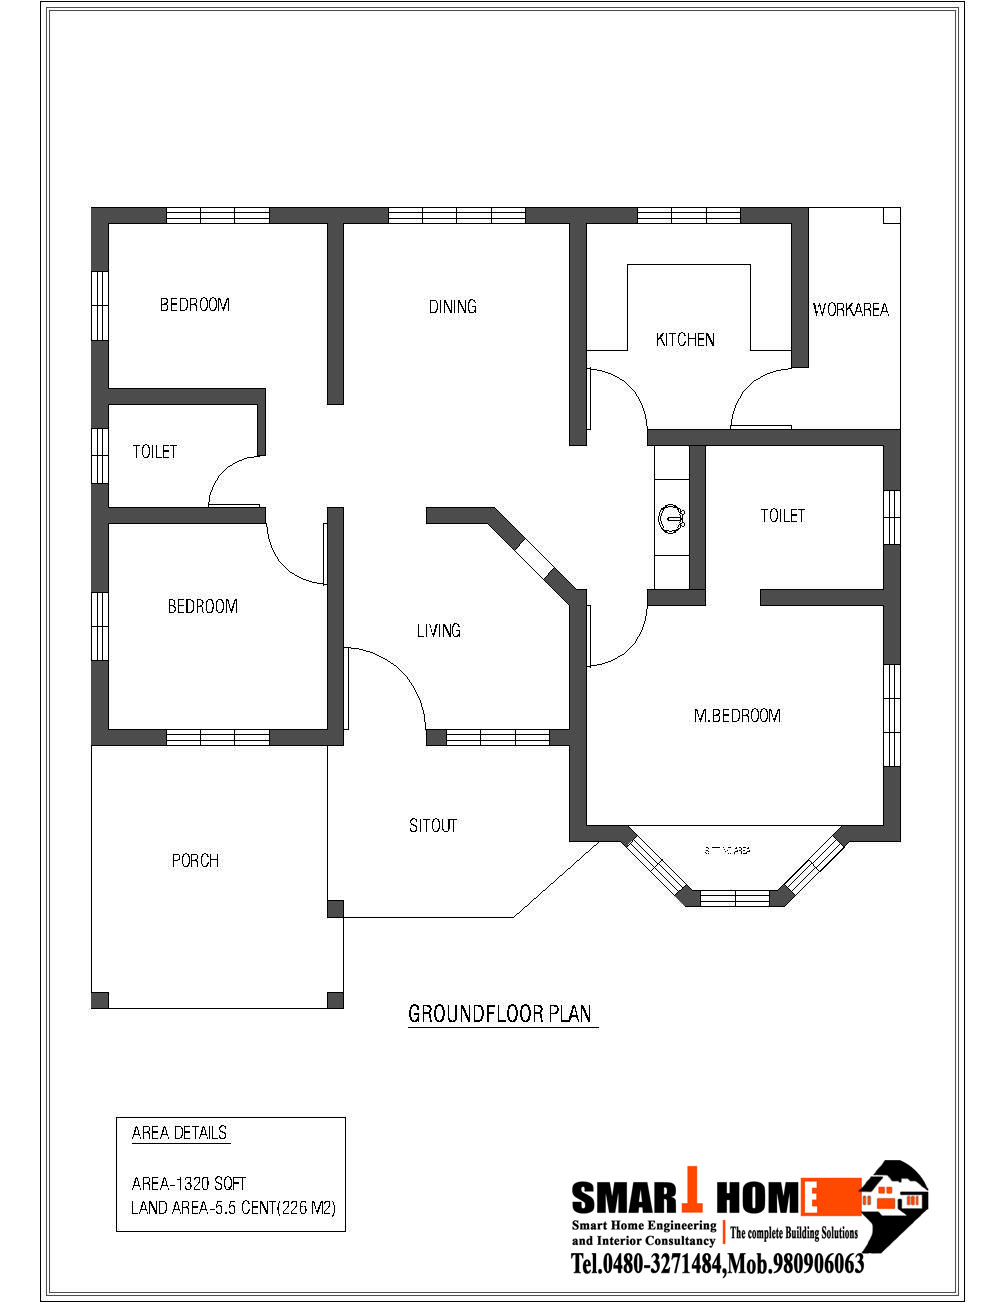 3 bedroom house plans floor plans 3 bedroom 3 bath house plans